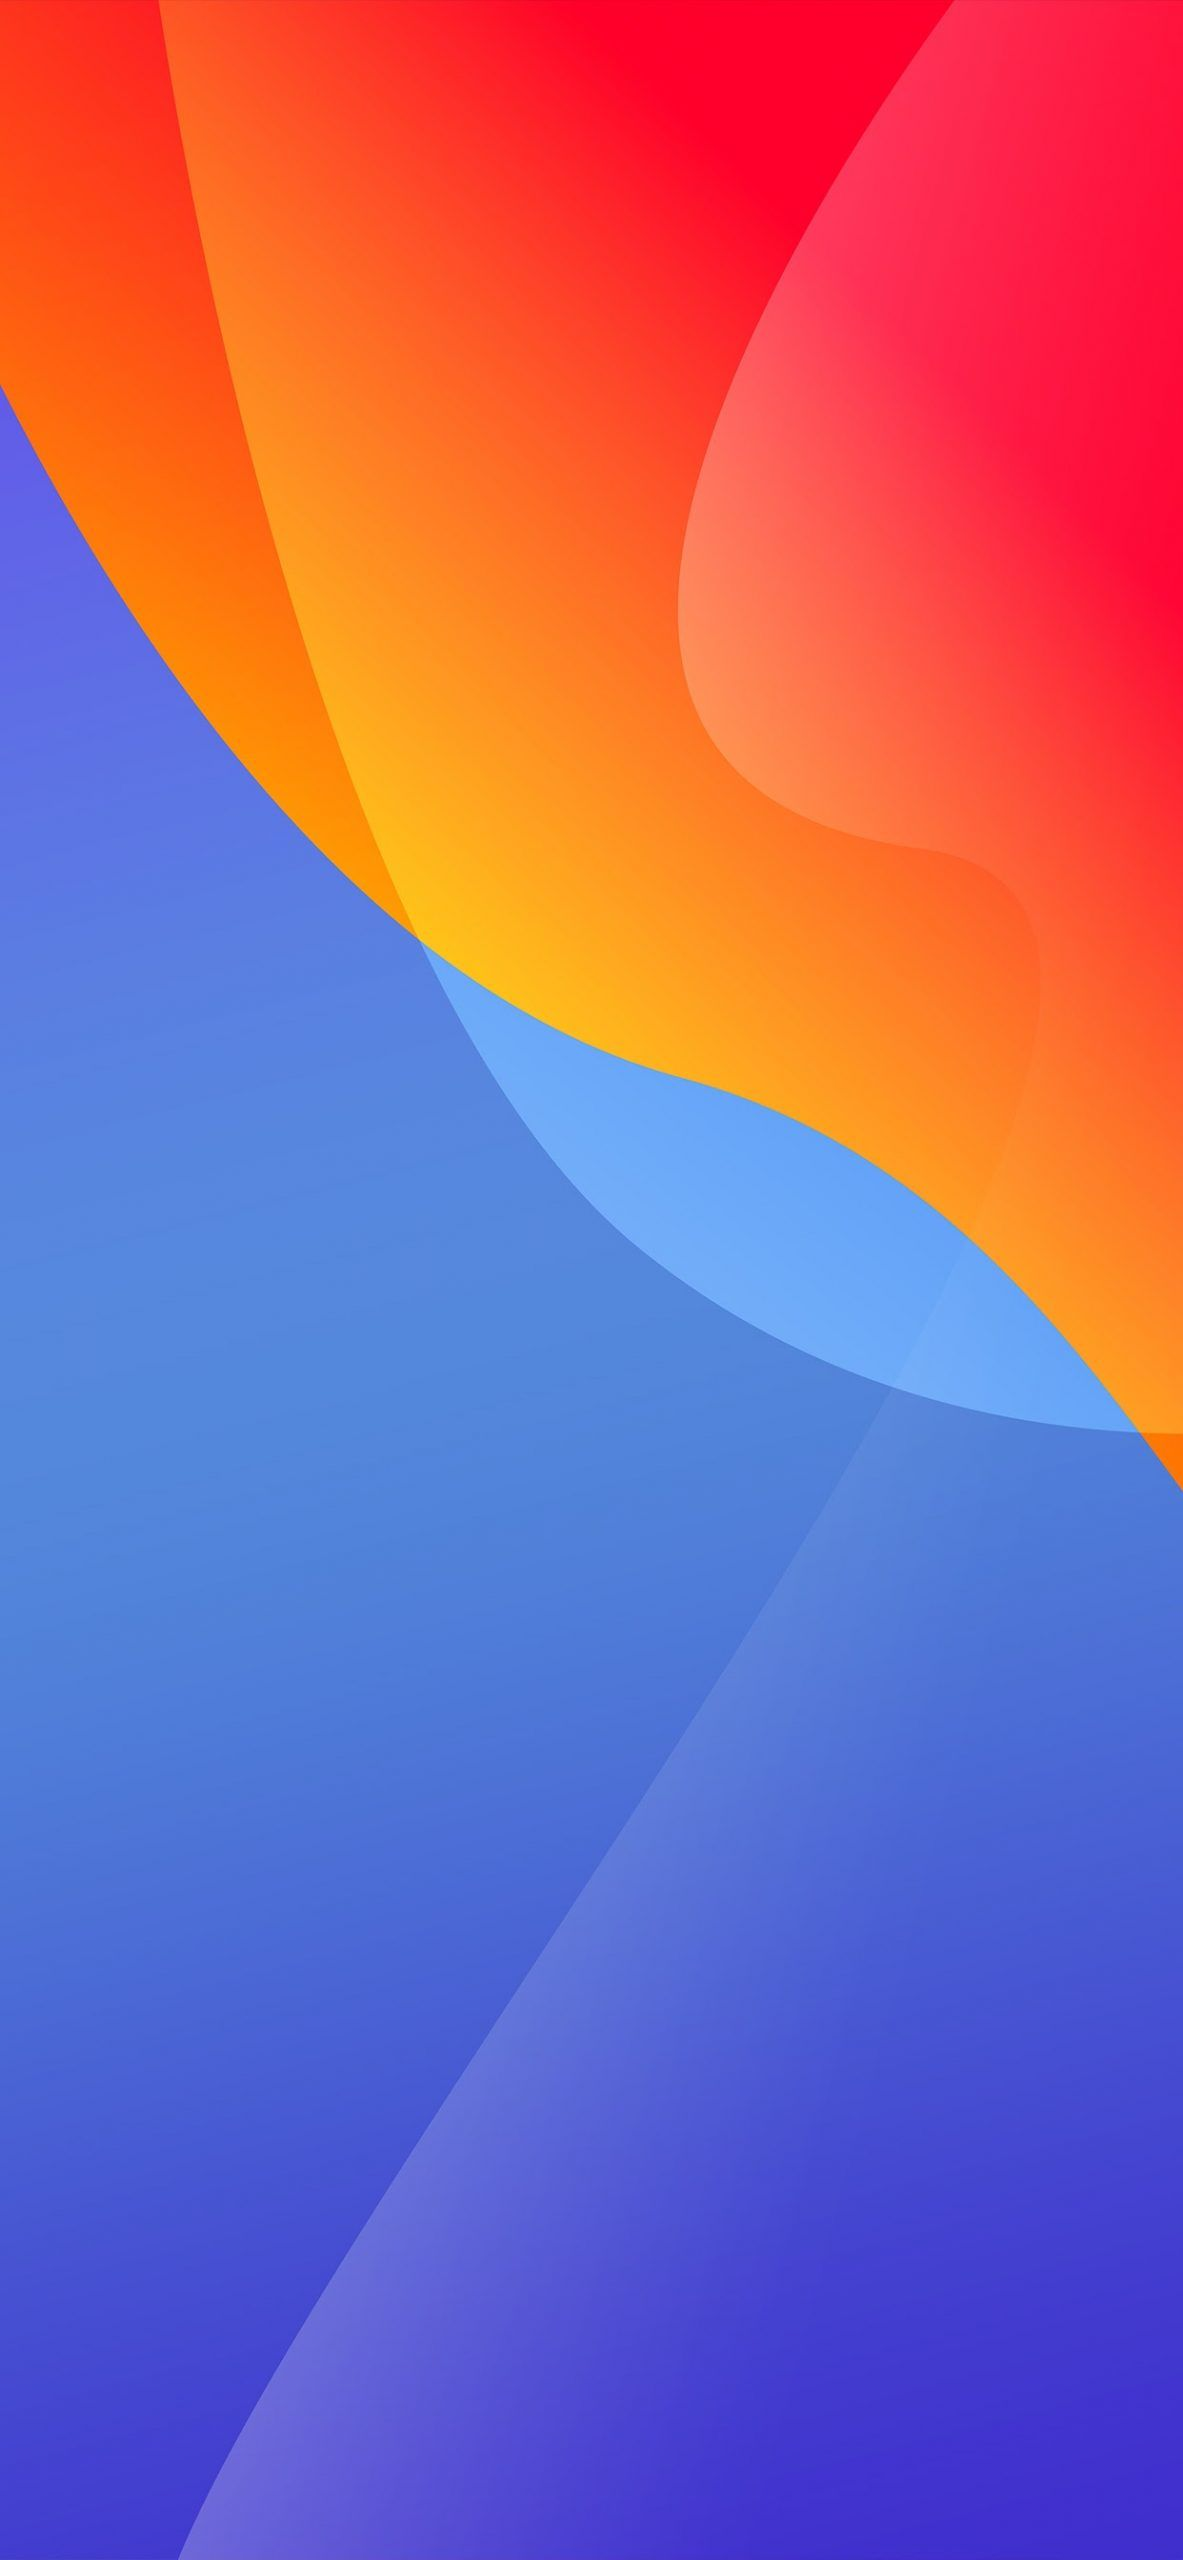 Blue To Orange New Gradient By Hk3ton On Twitter In 2020 Iphone Homescreen Wallpaper Color Wallpaper Iphone Abstract Wallpaper Backgrounds